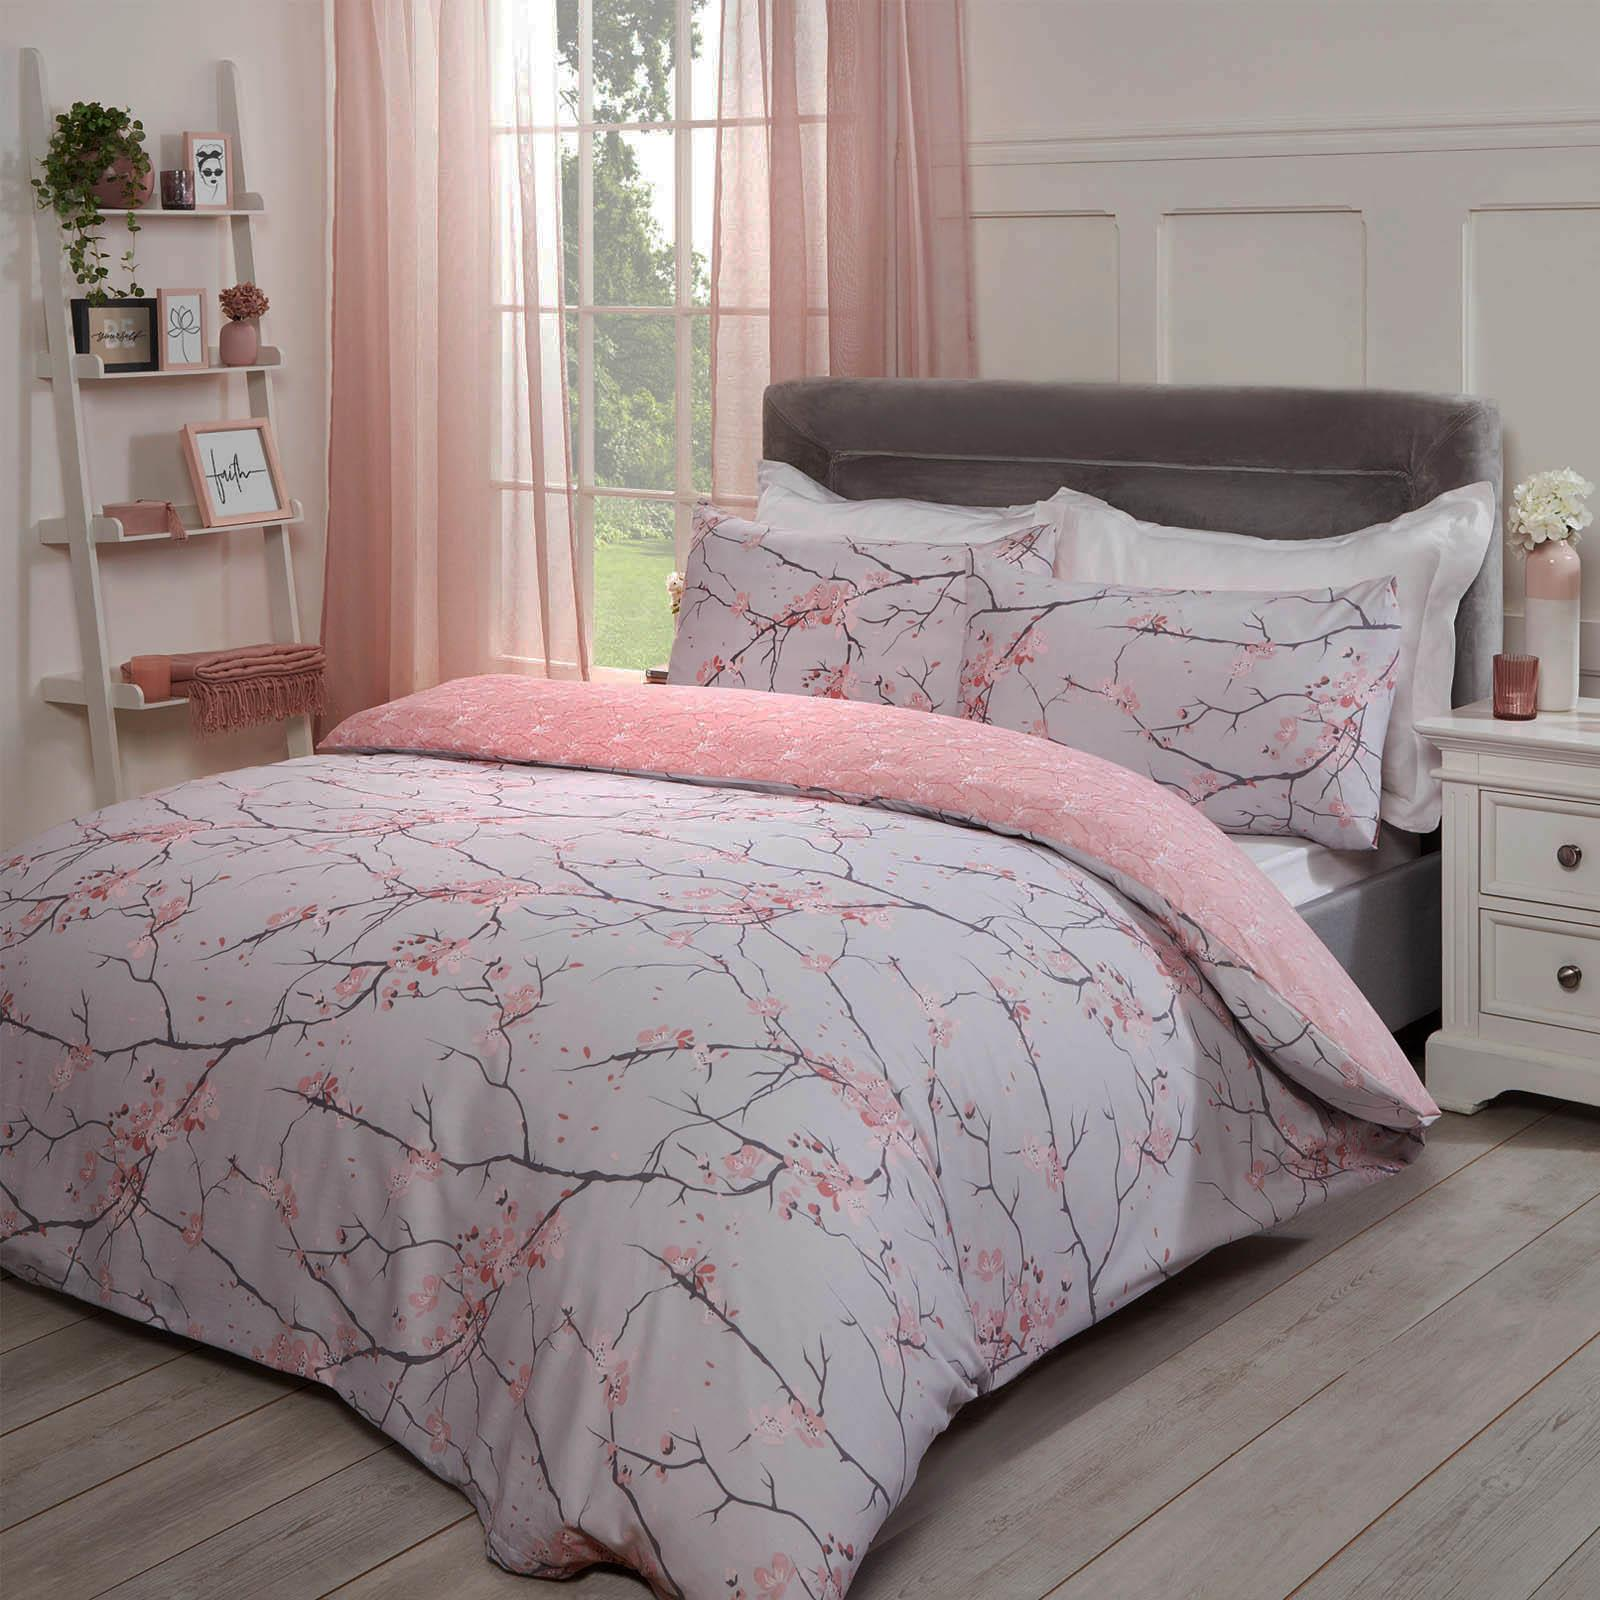 thumbnail 8 - Dreamscene Spring Blossoms Duvet Cover with Pillowcases Bedding Set Blush Ochre